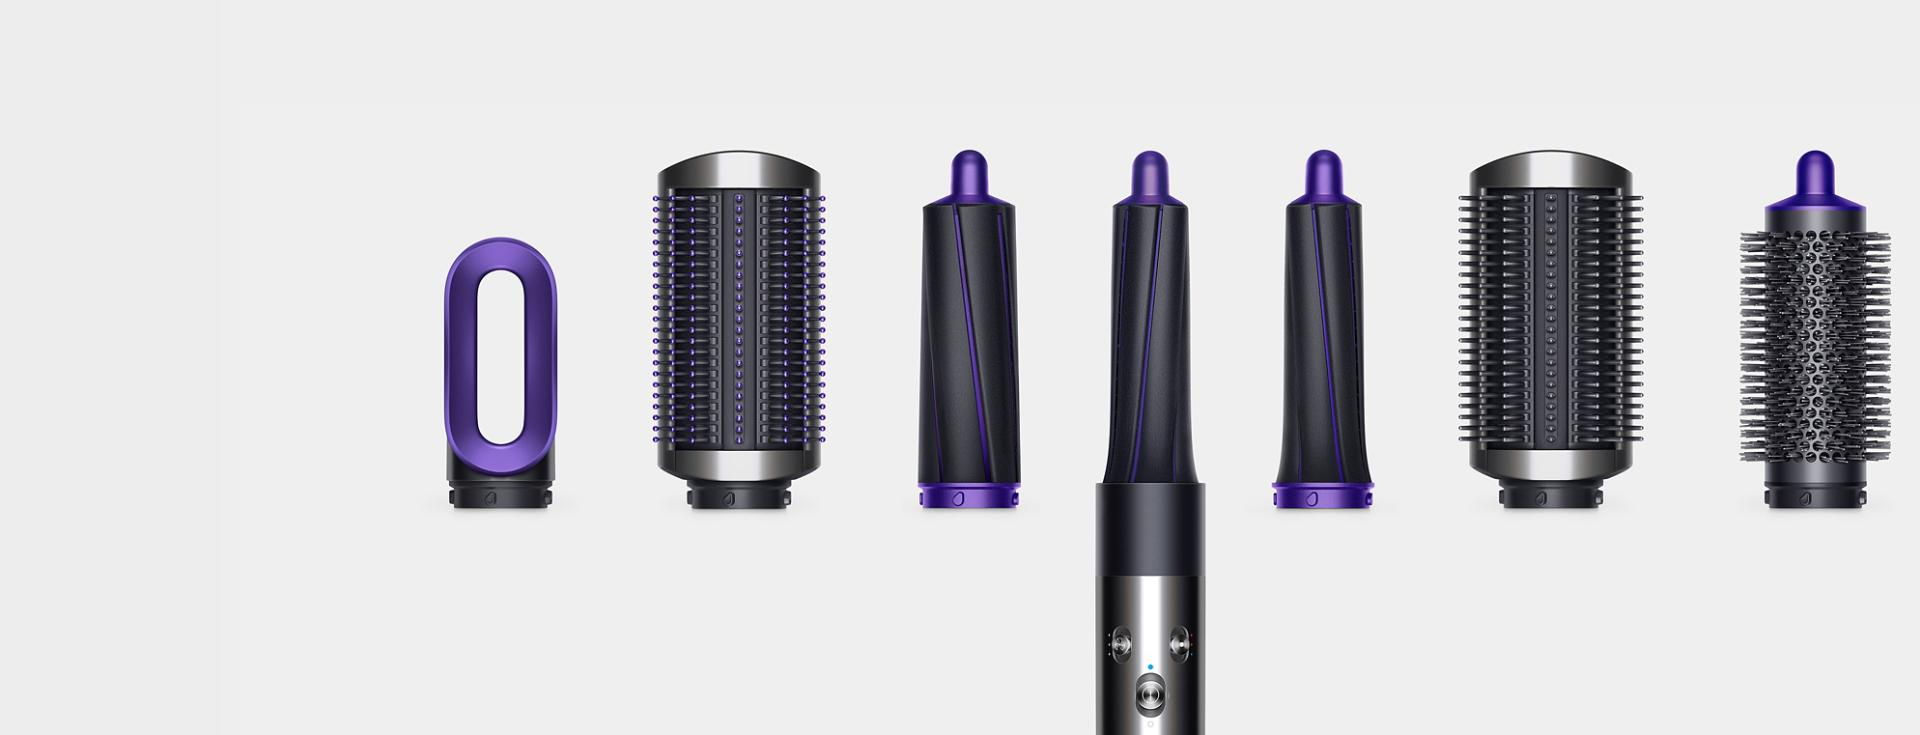 Dyson Airwrap and attachments